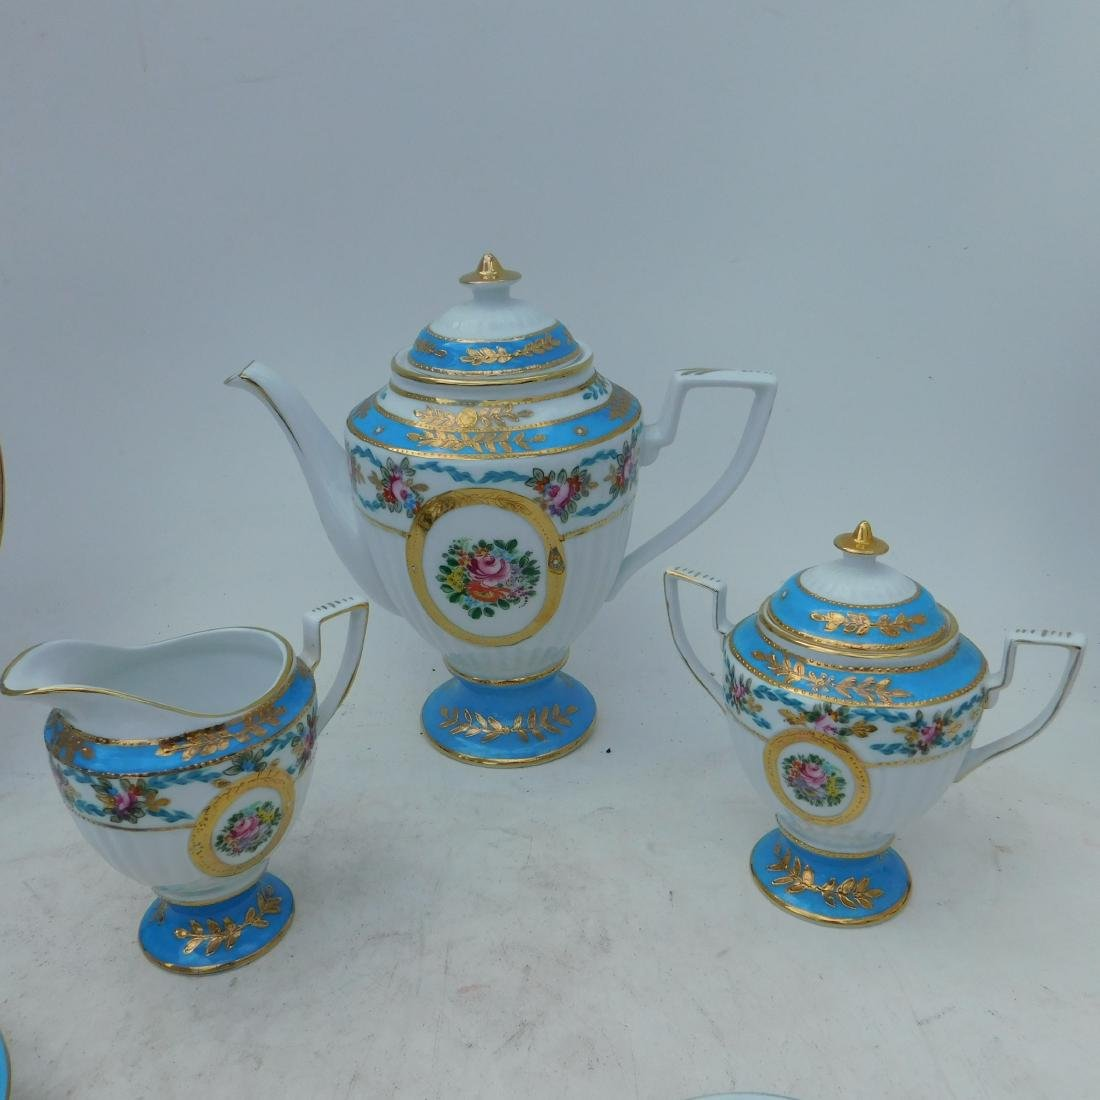 KPM Partial Coffee and Dessert Service In Turquois - 5